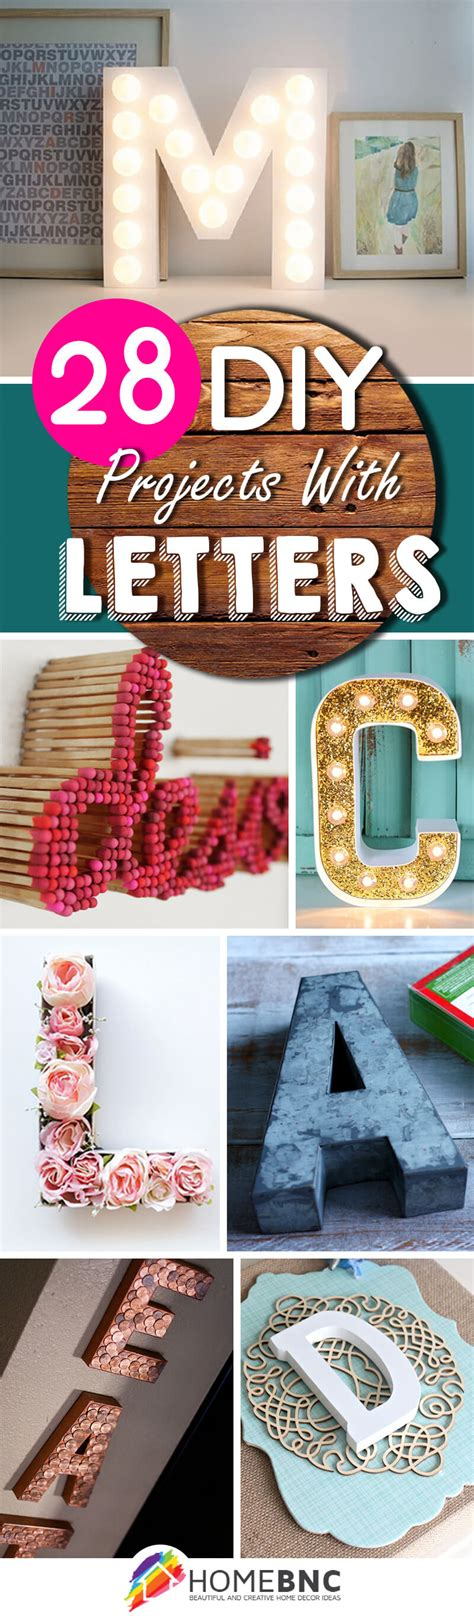 28 Best Diy Projects With Letters (ideas And Designs) For 2018